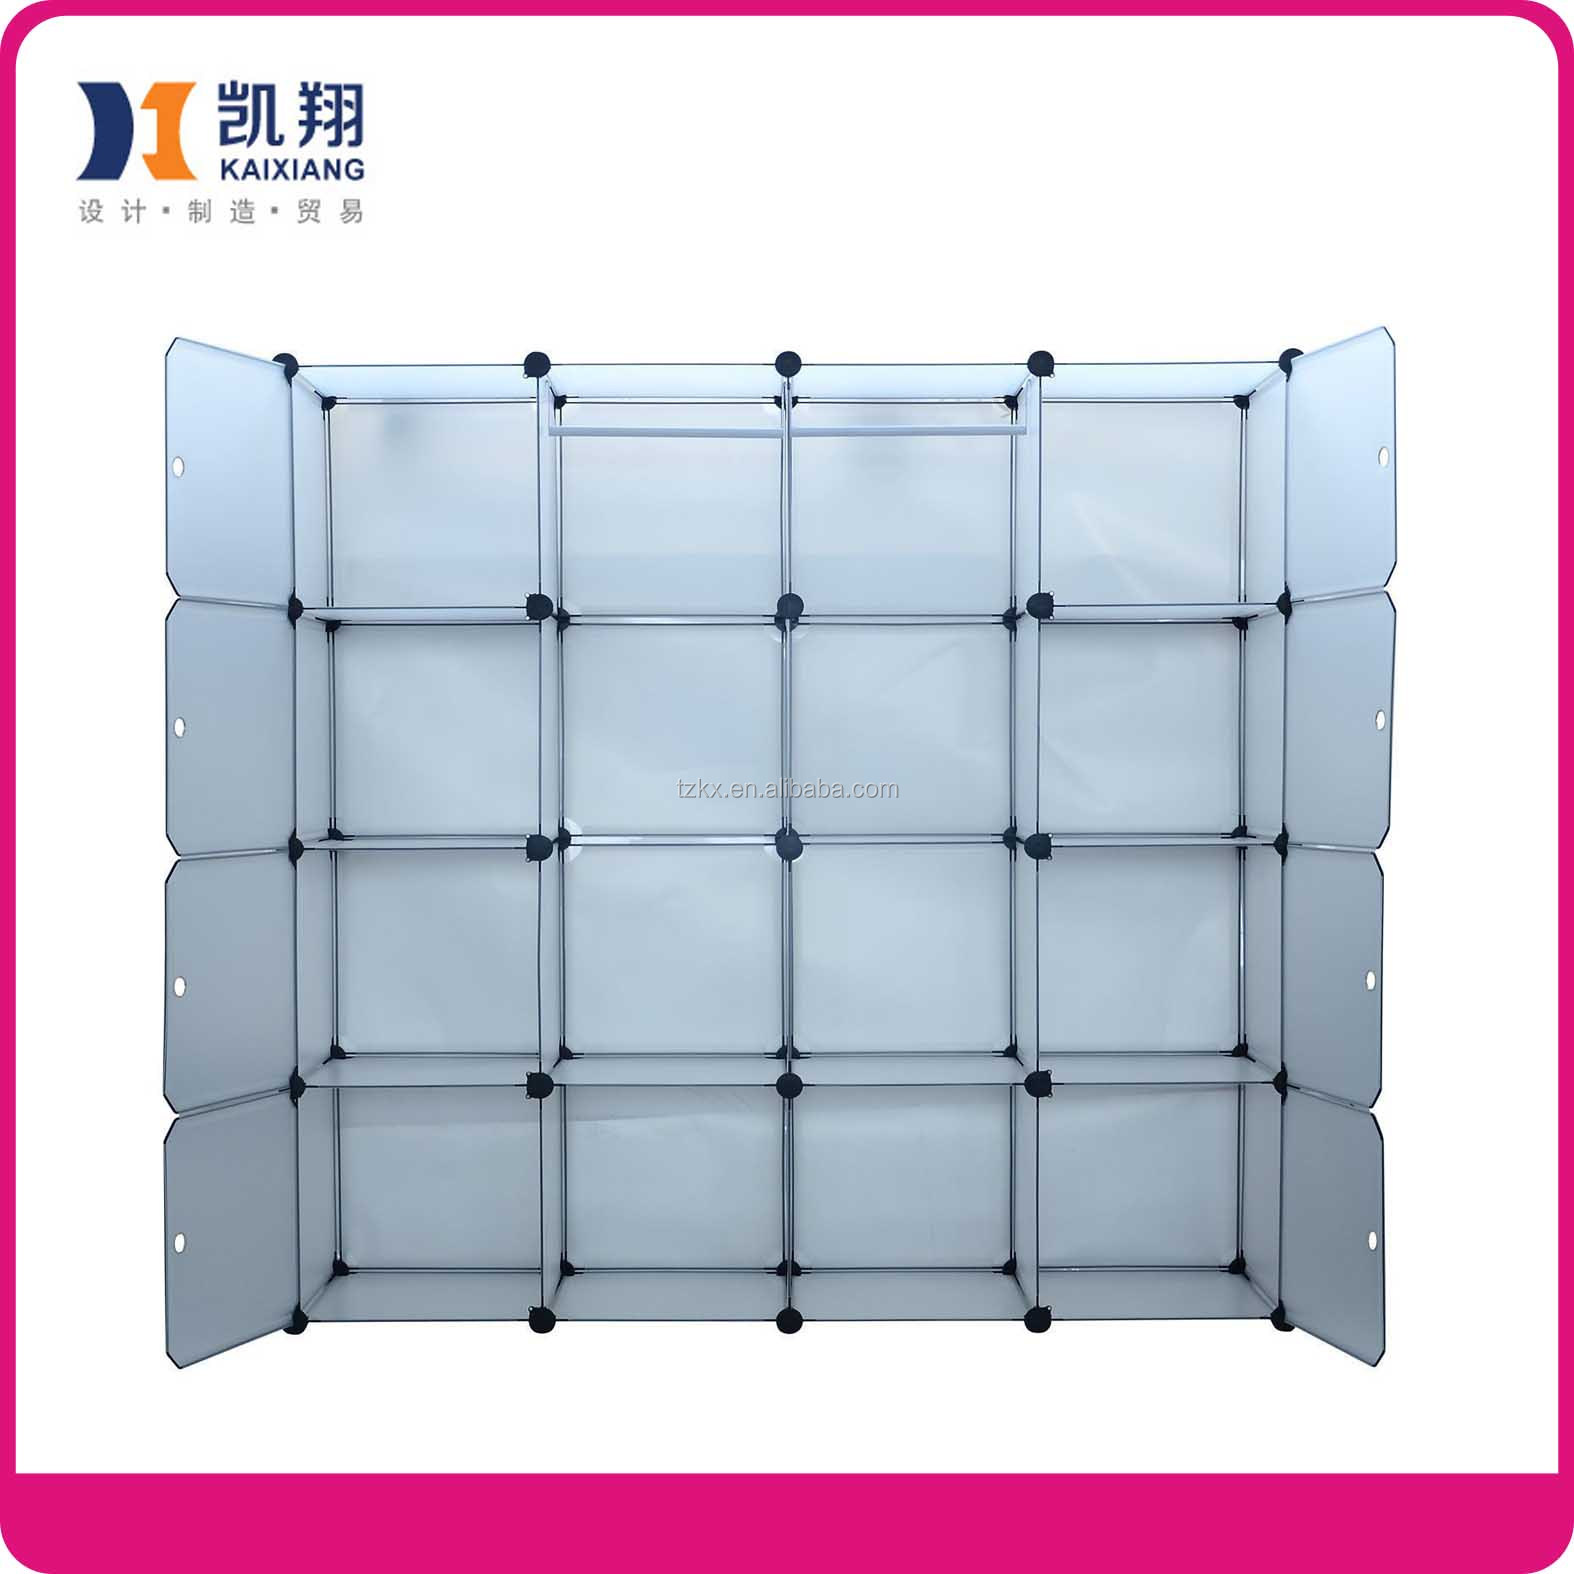 Etonnant Plastic Folding Stackable Storage Cubes   Buy Plastic Storage Cubes,Folding Storage  Cube,Plastic Stackable Storage Cubes Product On Alibaba.com